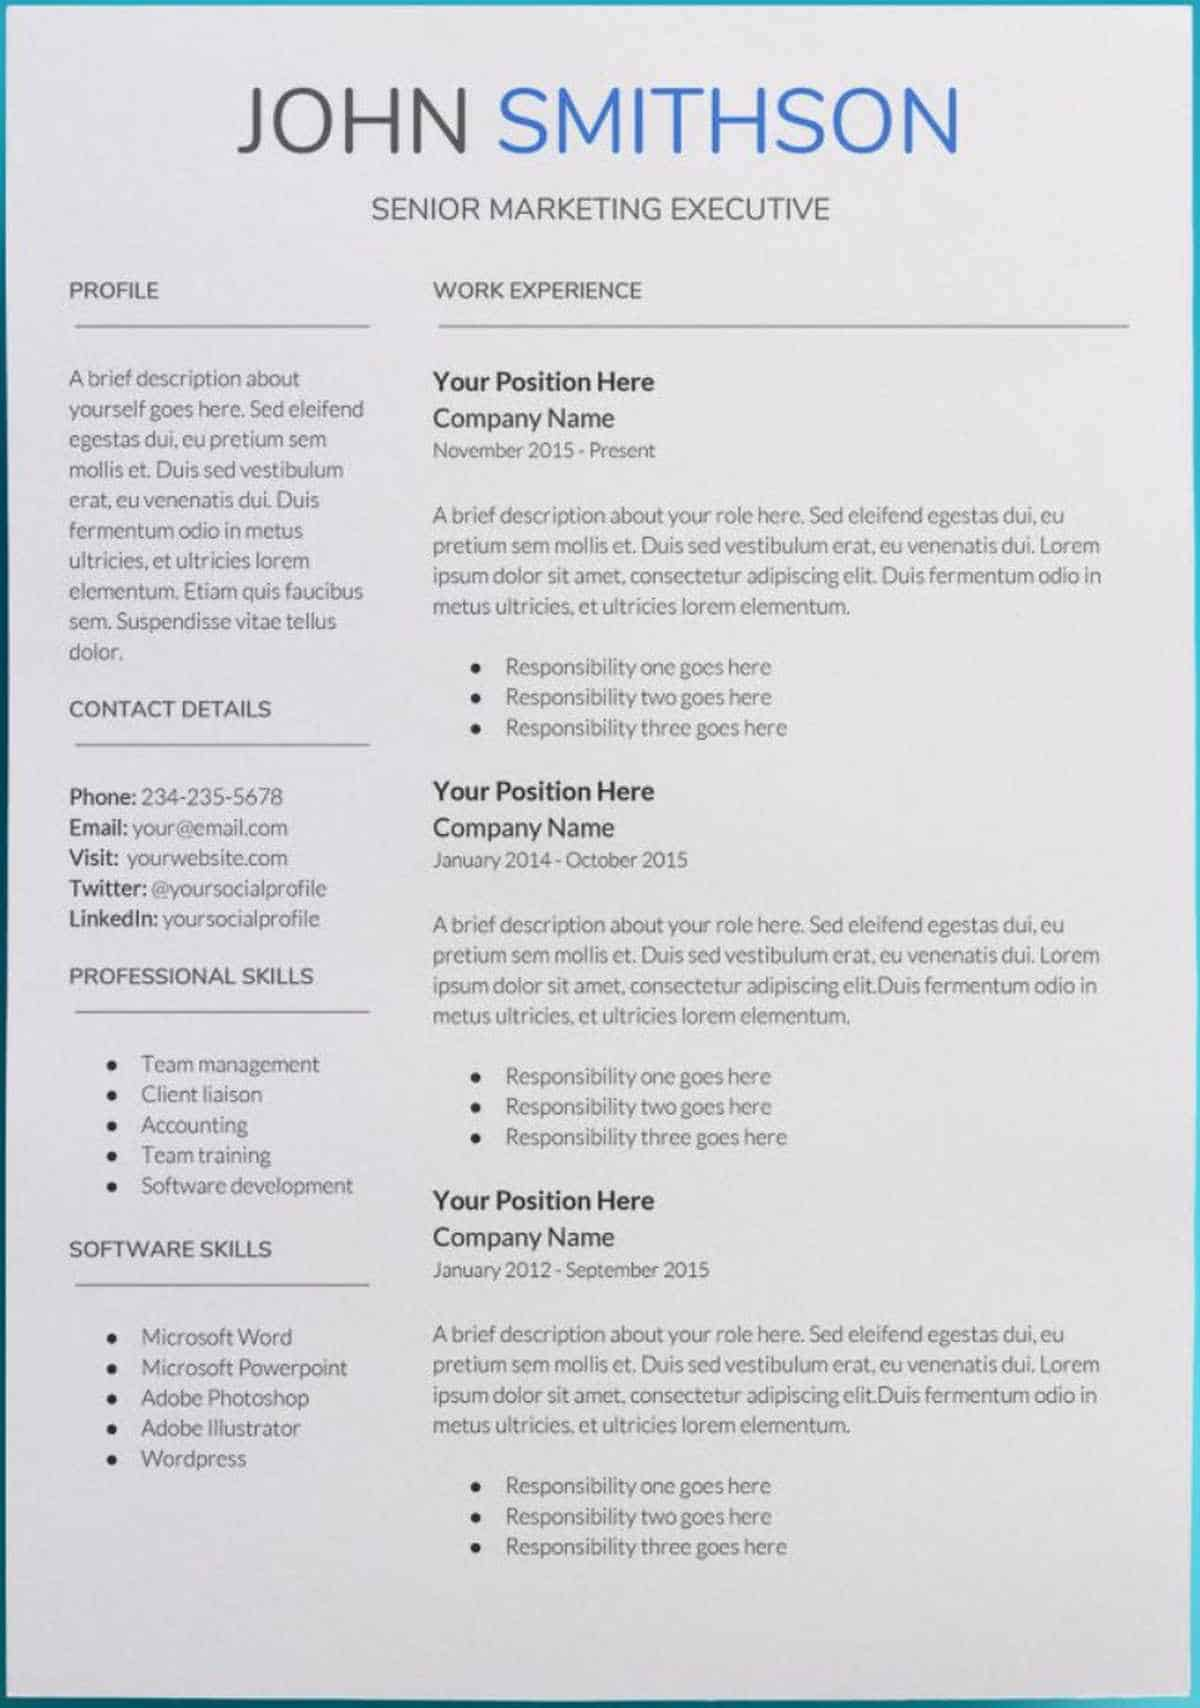 Saturn Google Docs Resume Template | Google Docs Resume Templates [Downloadable PDFs] | Google Docs resume template free | how to make a resume on Google Docs